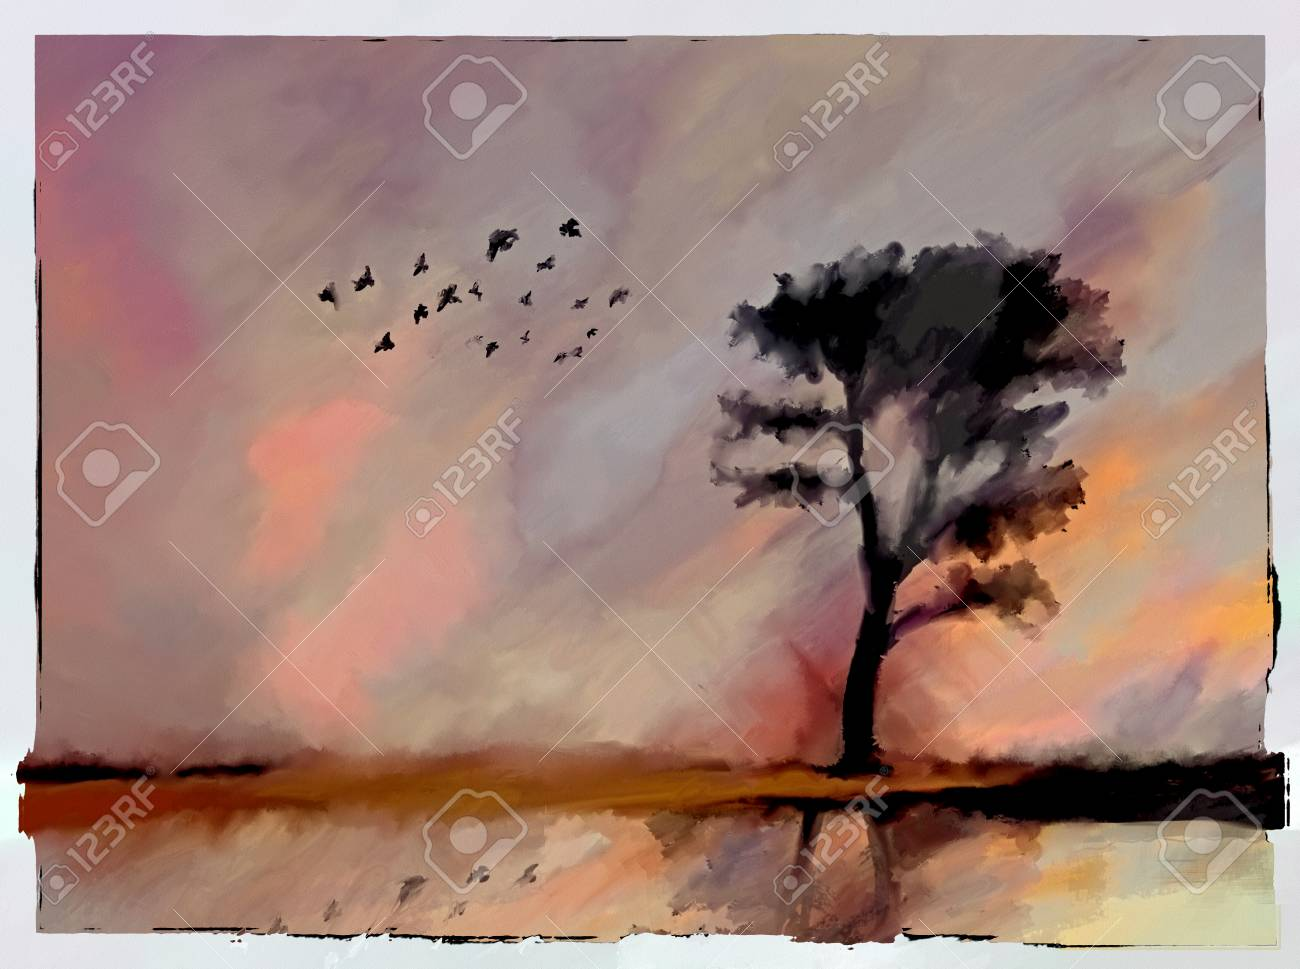 Abstract watercolor oil painting alone tree silhouette and birds on lake beach warm pastel